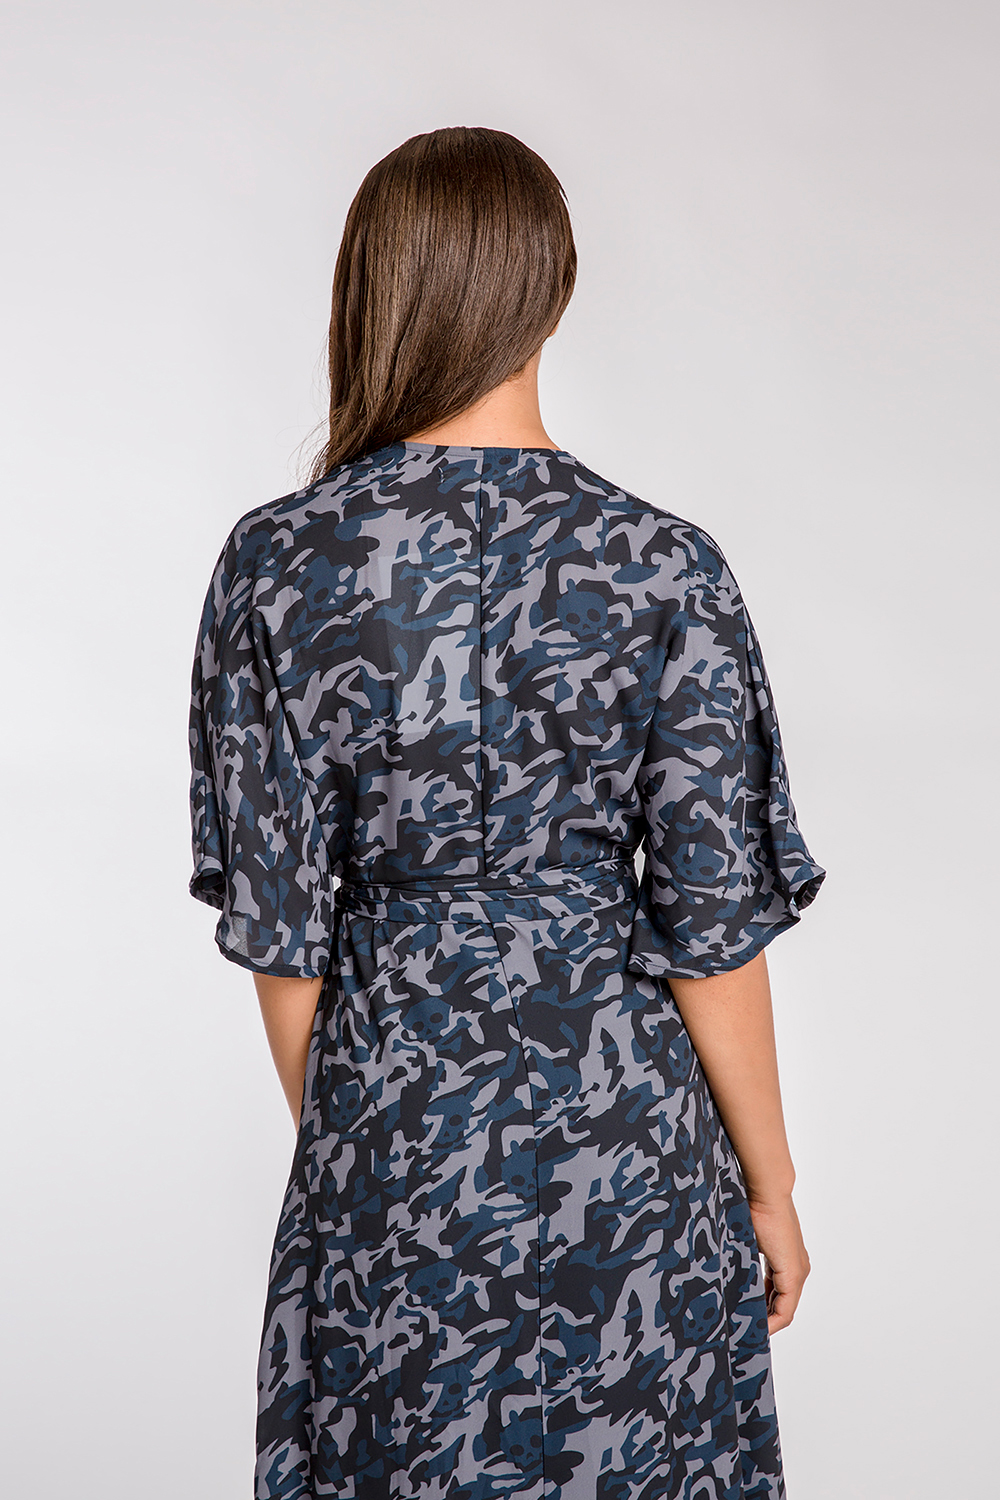 Wrap Dress in Blue Camo Kimono Sleeve & Cinched Waist